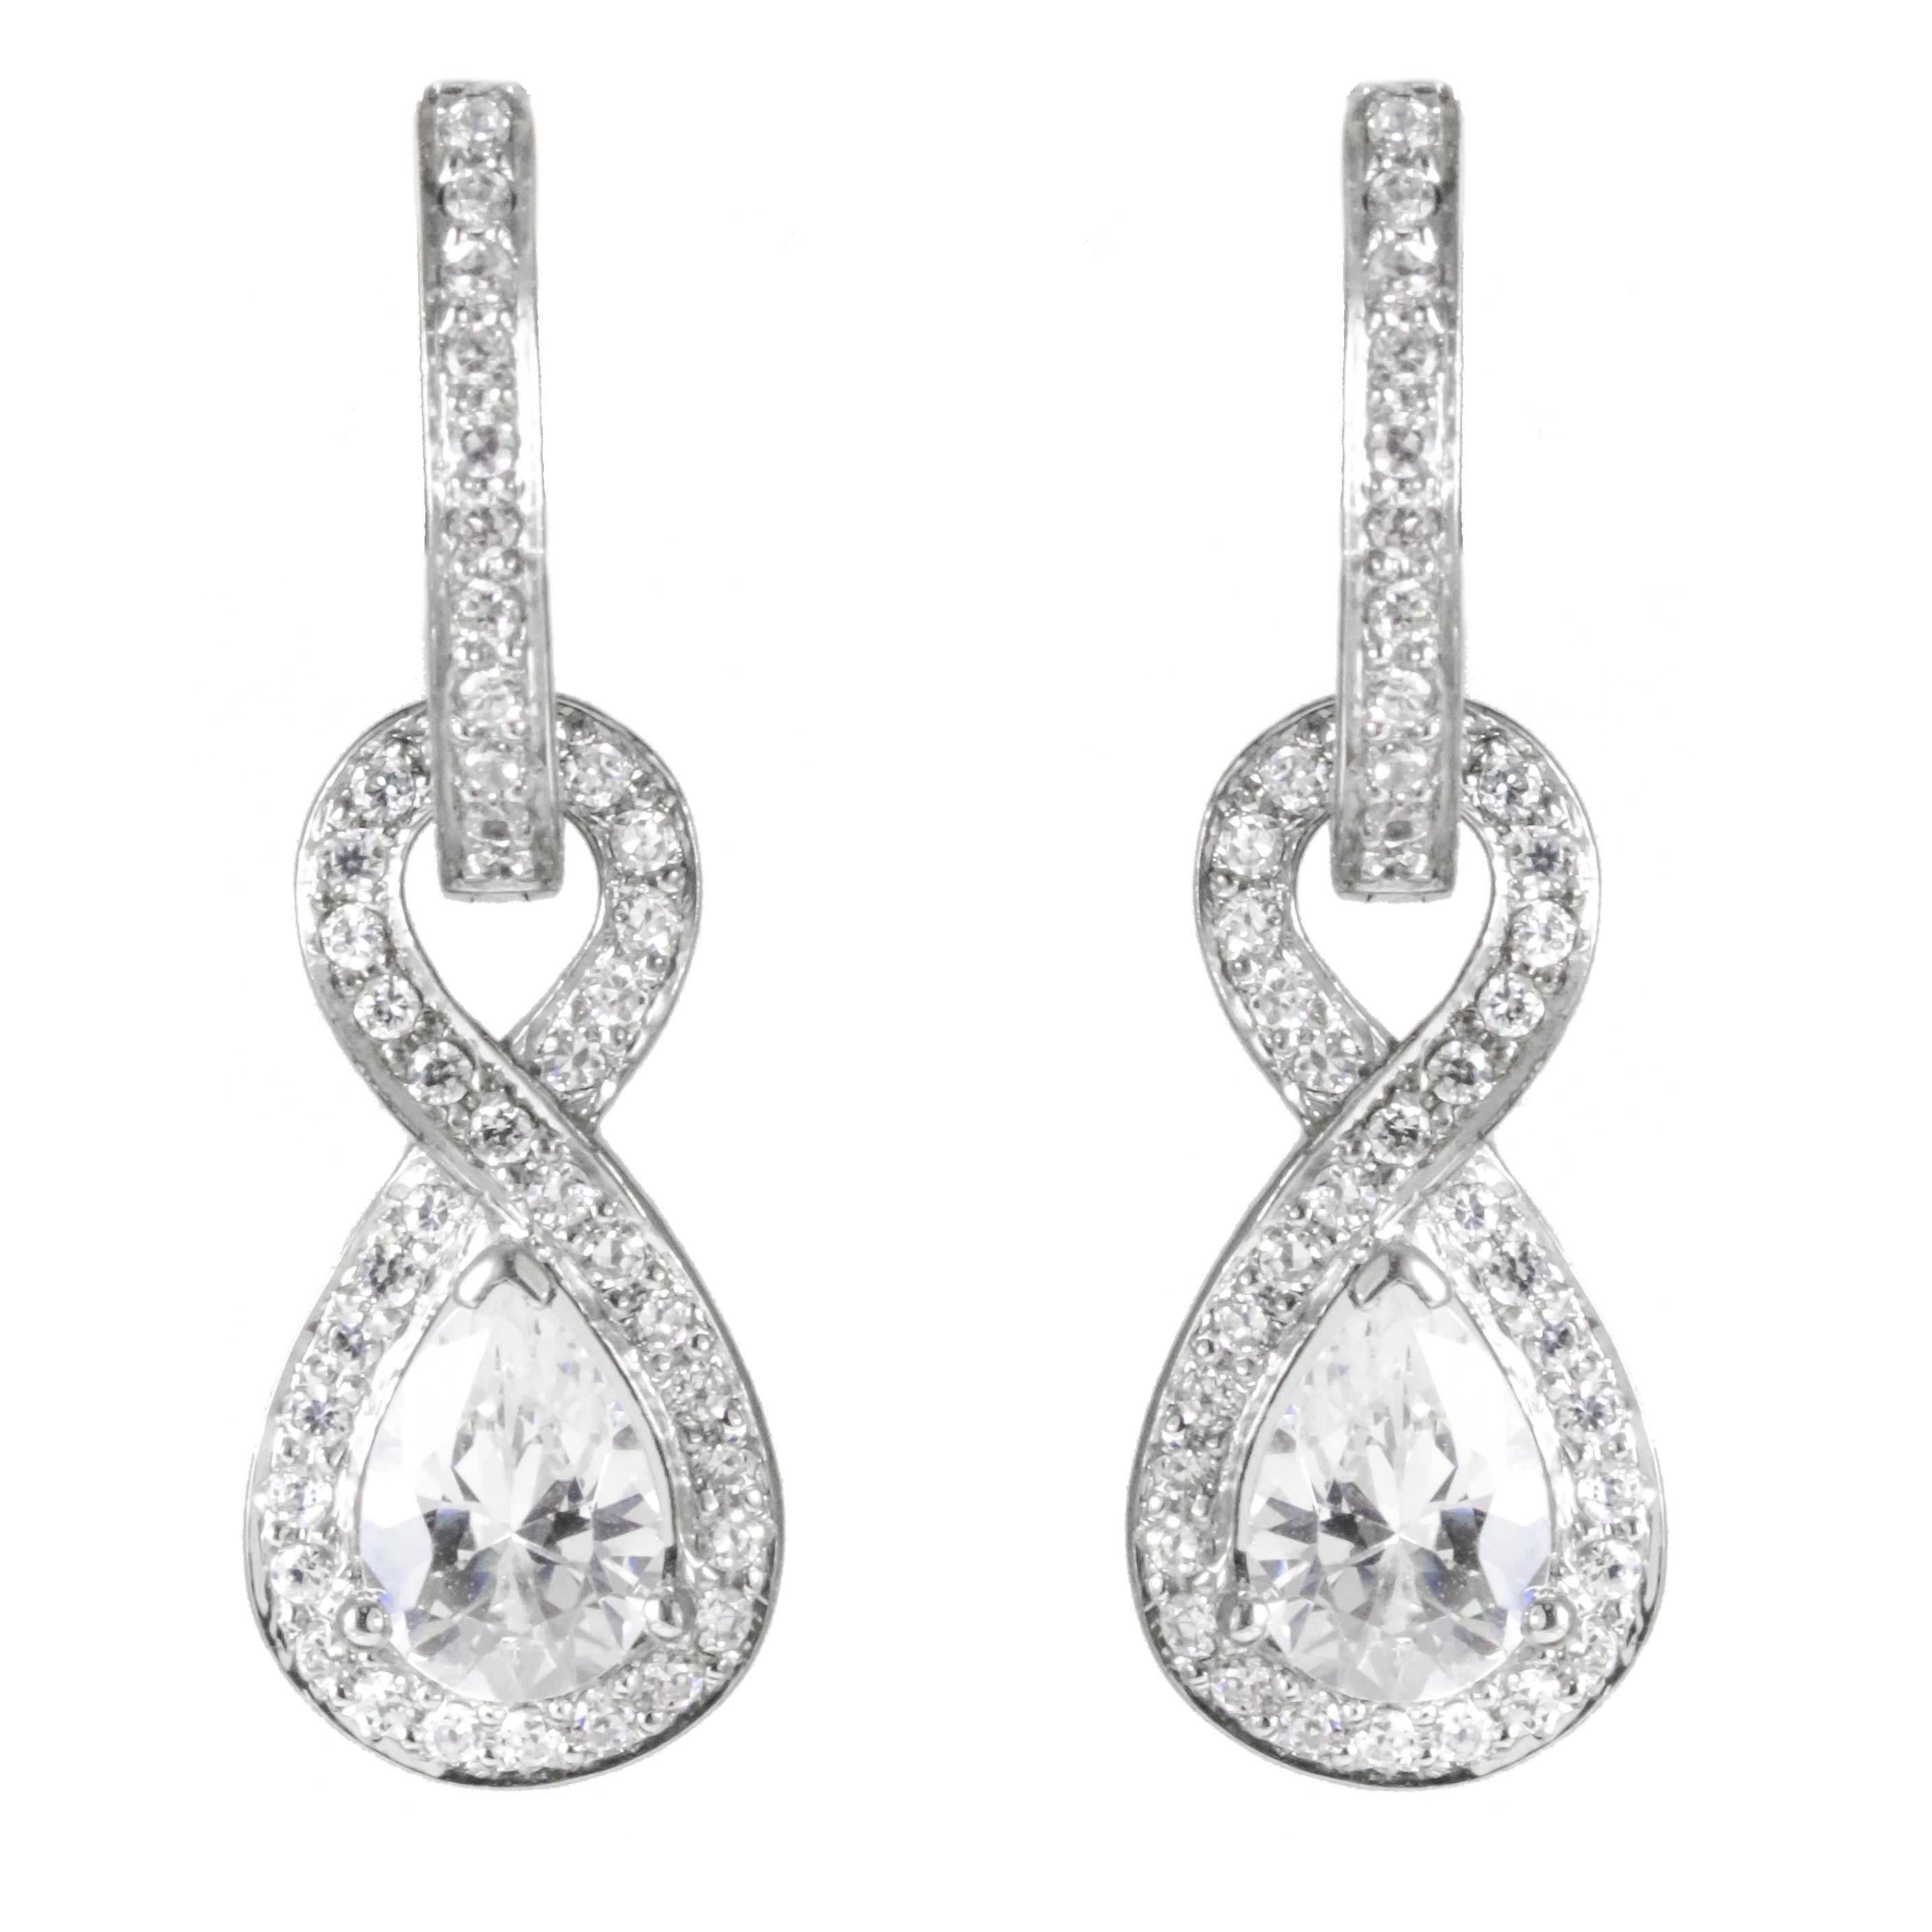 design product diamond amour pgi shape designs rectangular lamour pear crisscut earrings christopher l platinum gallery